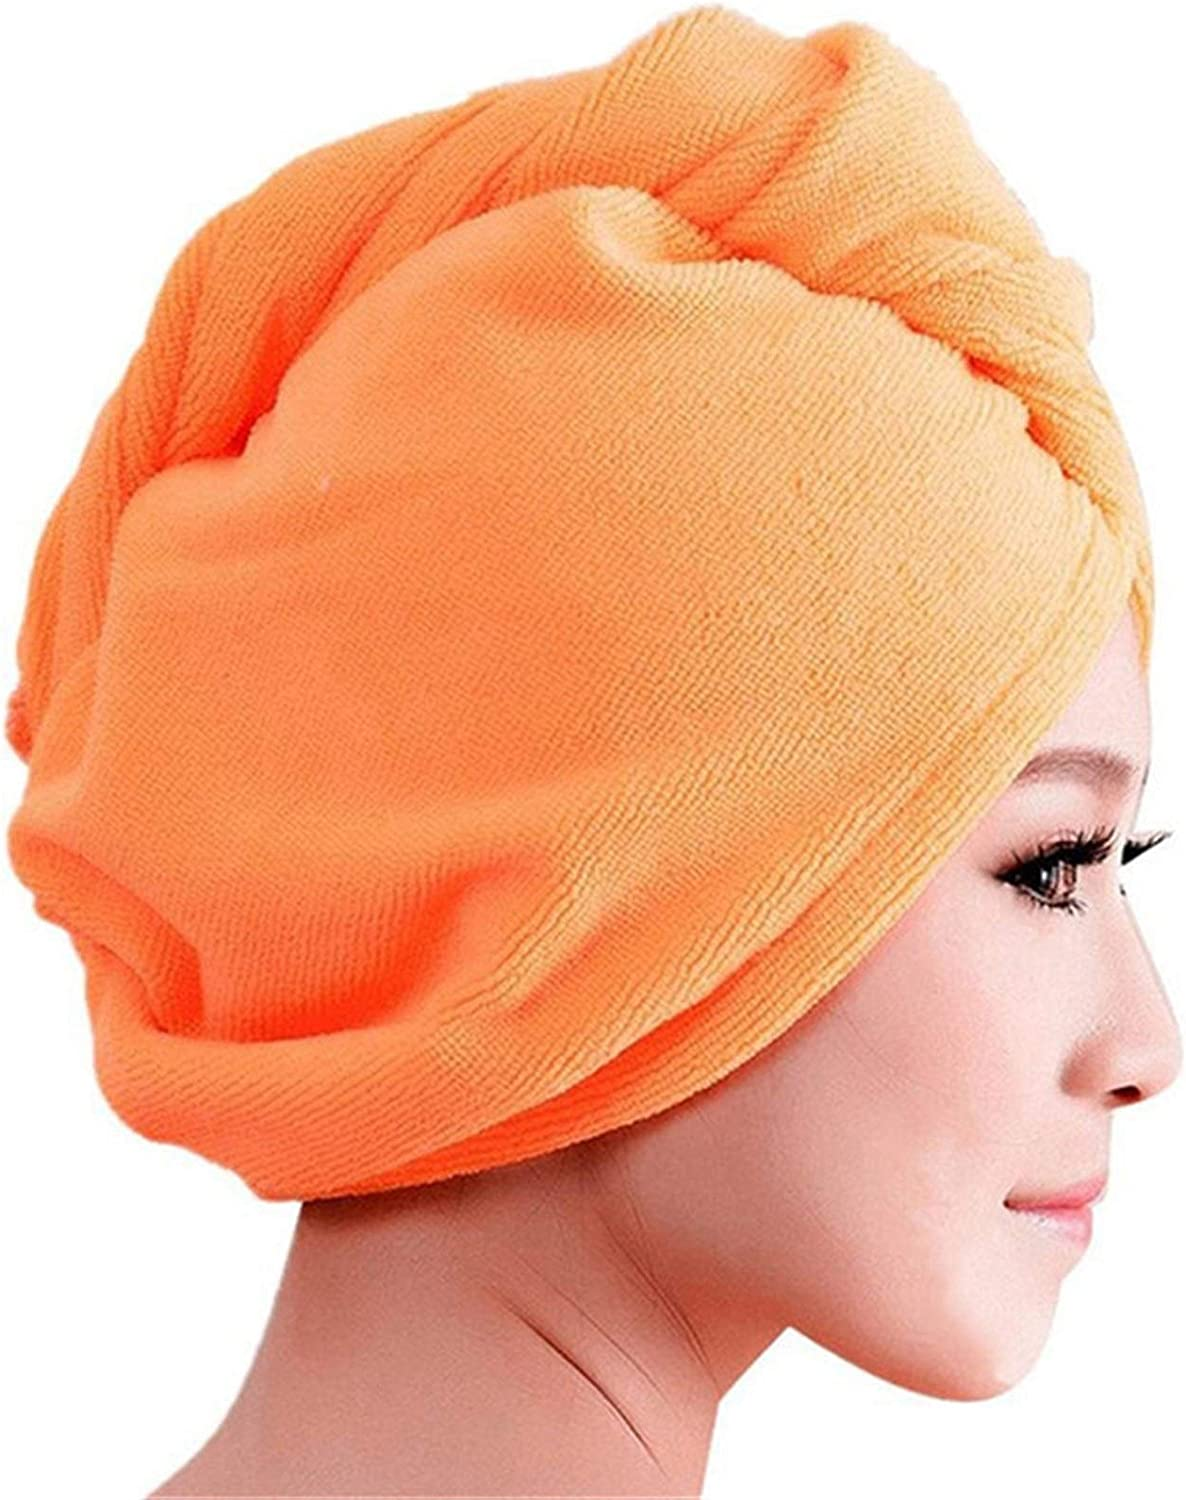 SEAL limited product Dry Hair Towel Super Absorbent T New sales Microfiber Quick